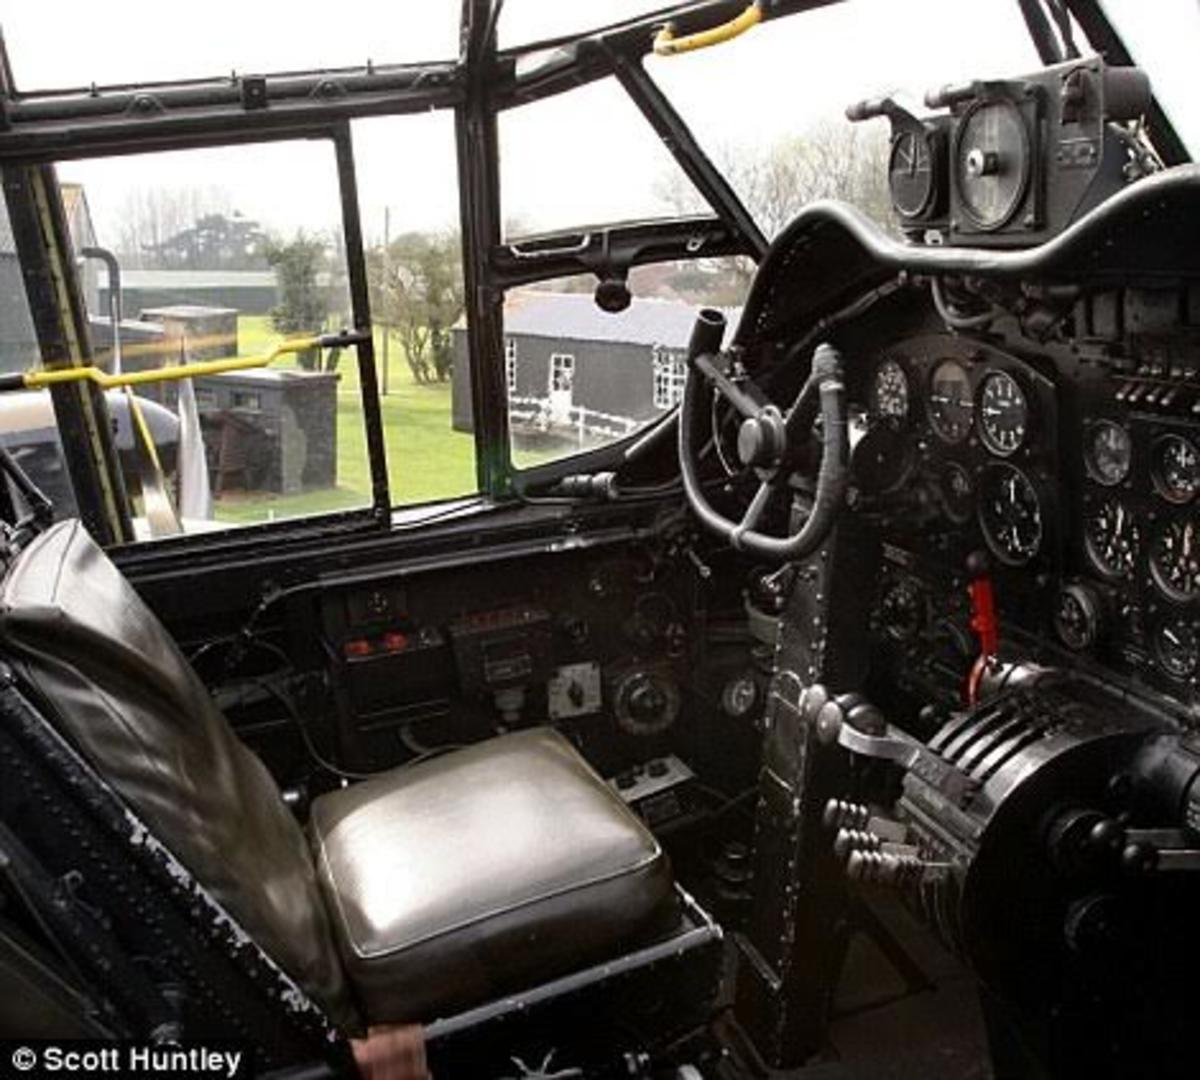 Cockpit of a Lancaster bomber